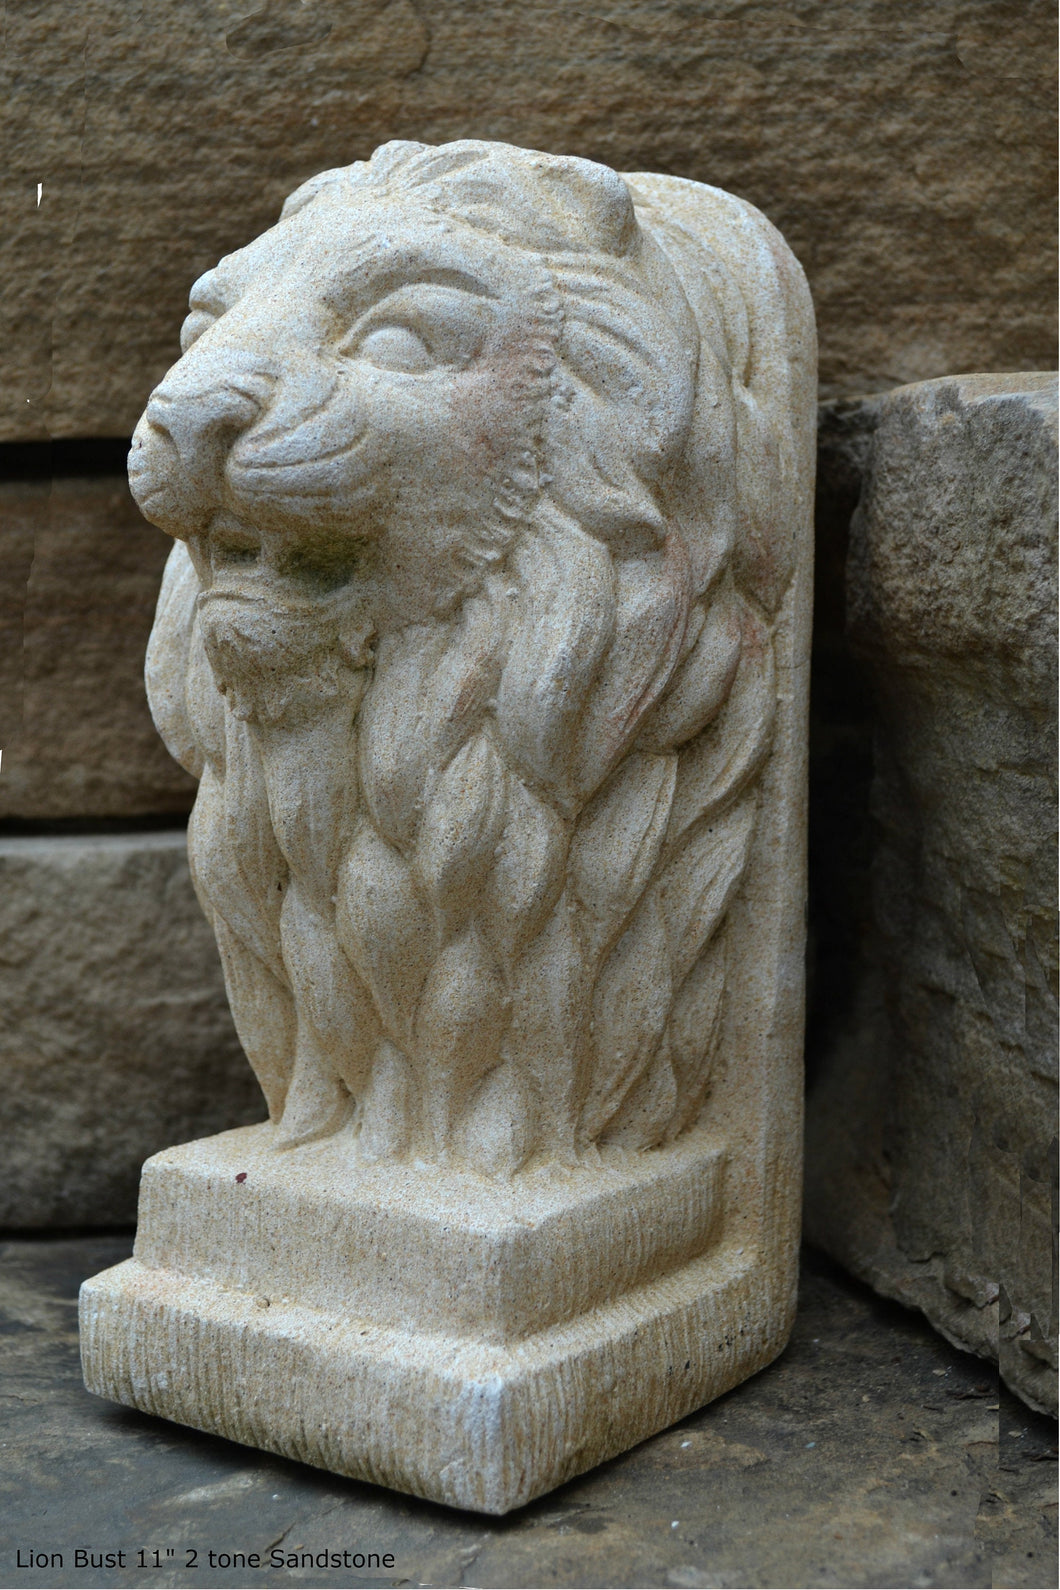 Lion Bust Crete sculpture art www.Neo-Mfg.com home decor 11""